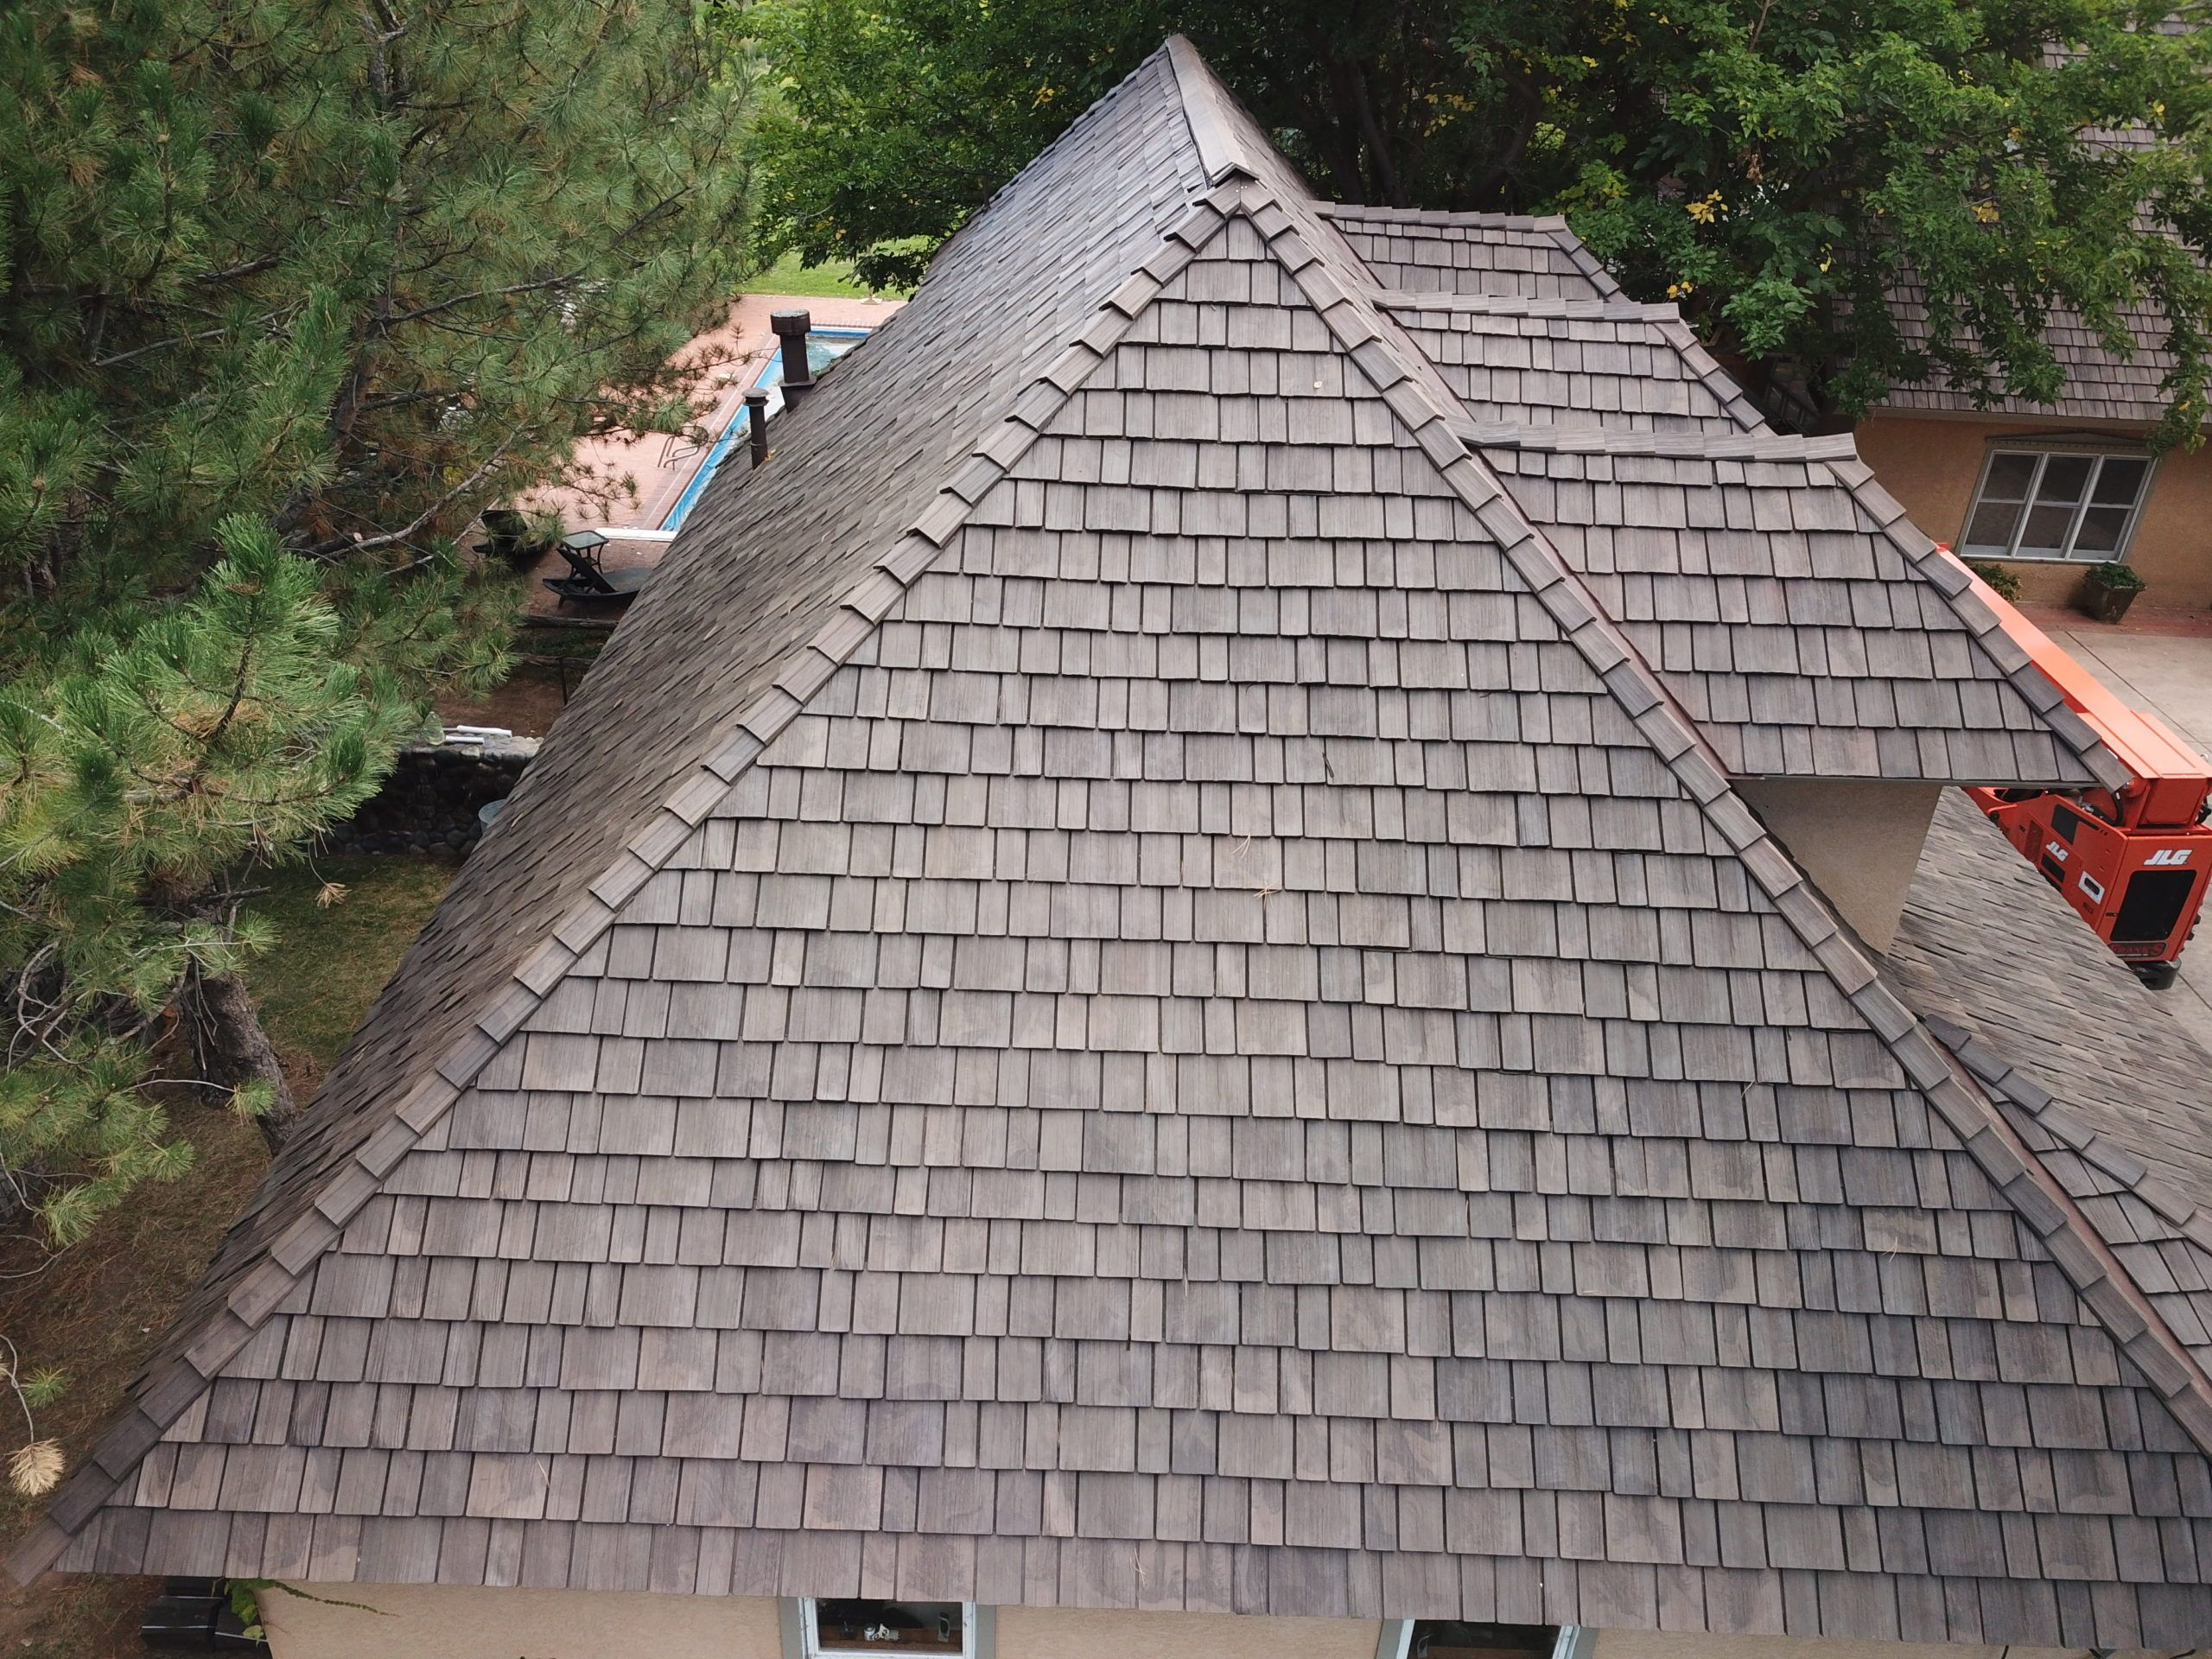 Hail Damage Tearing Up Your Cedar Shake Roof Replace It With Brava To Keep Your Same Look While Adding A New Level Of Pro In 2020 Shake Roof Roof Synthetic Roofing